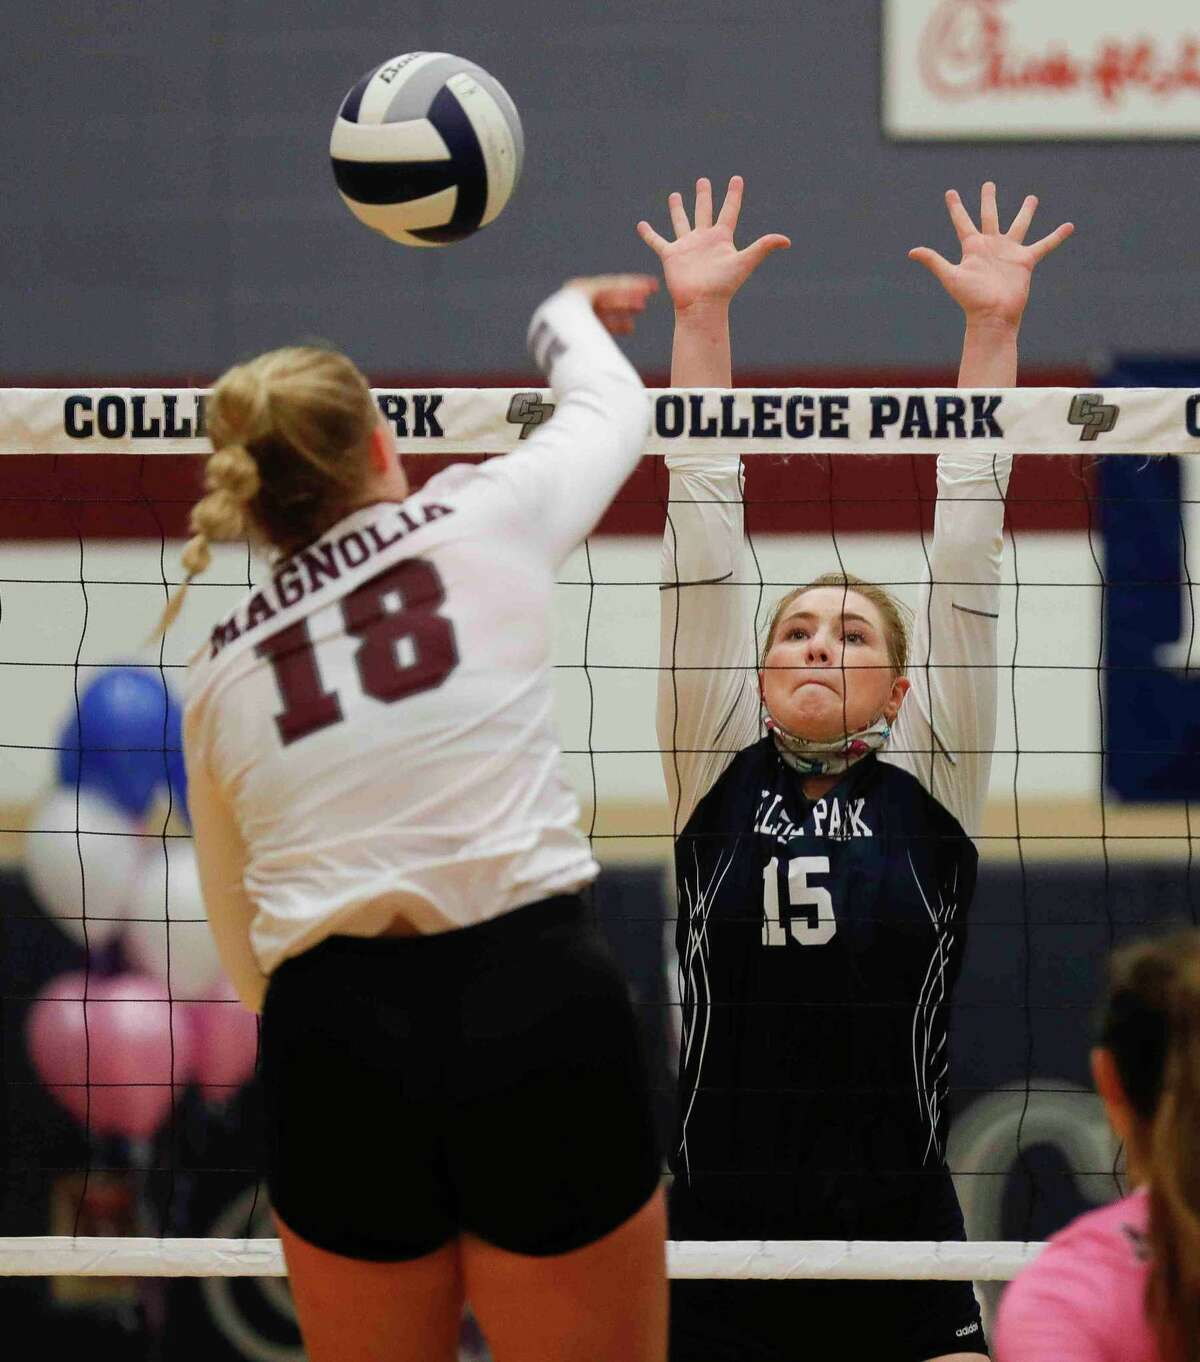 College Park's Paige Bernstein (15) pressures a shot by Magnolia's Brynn Botkin (18) during the first set of a non-district high school volleyball match at College Park High School, Saturday, Sept. 26, 2020, in The Woodlands.